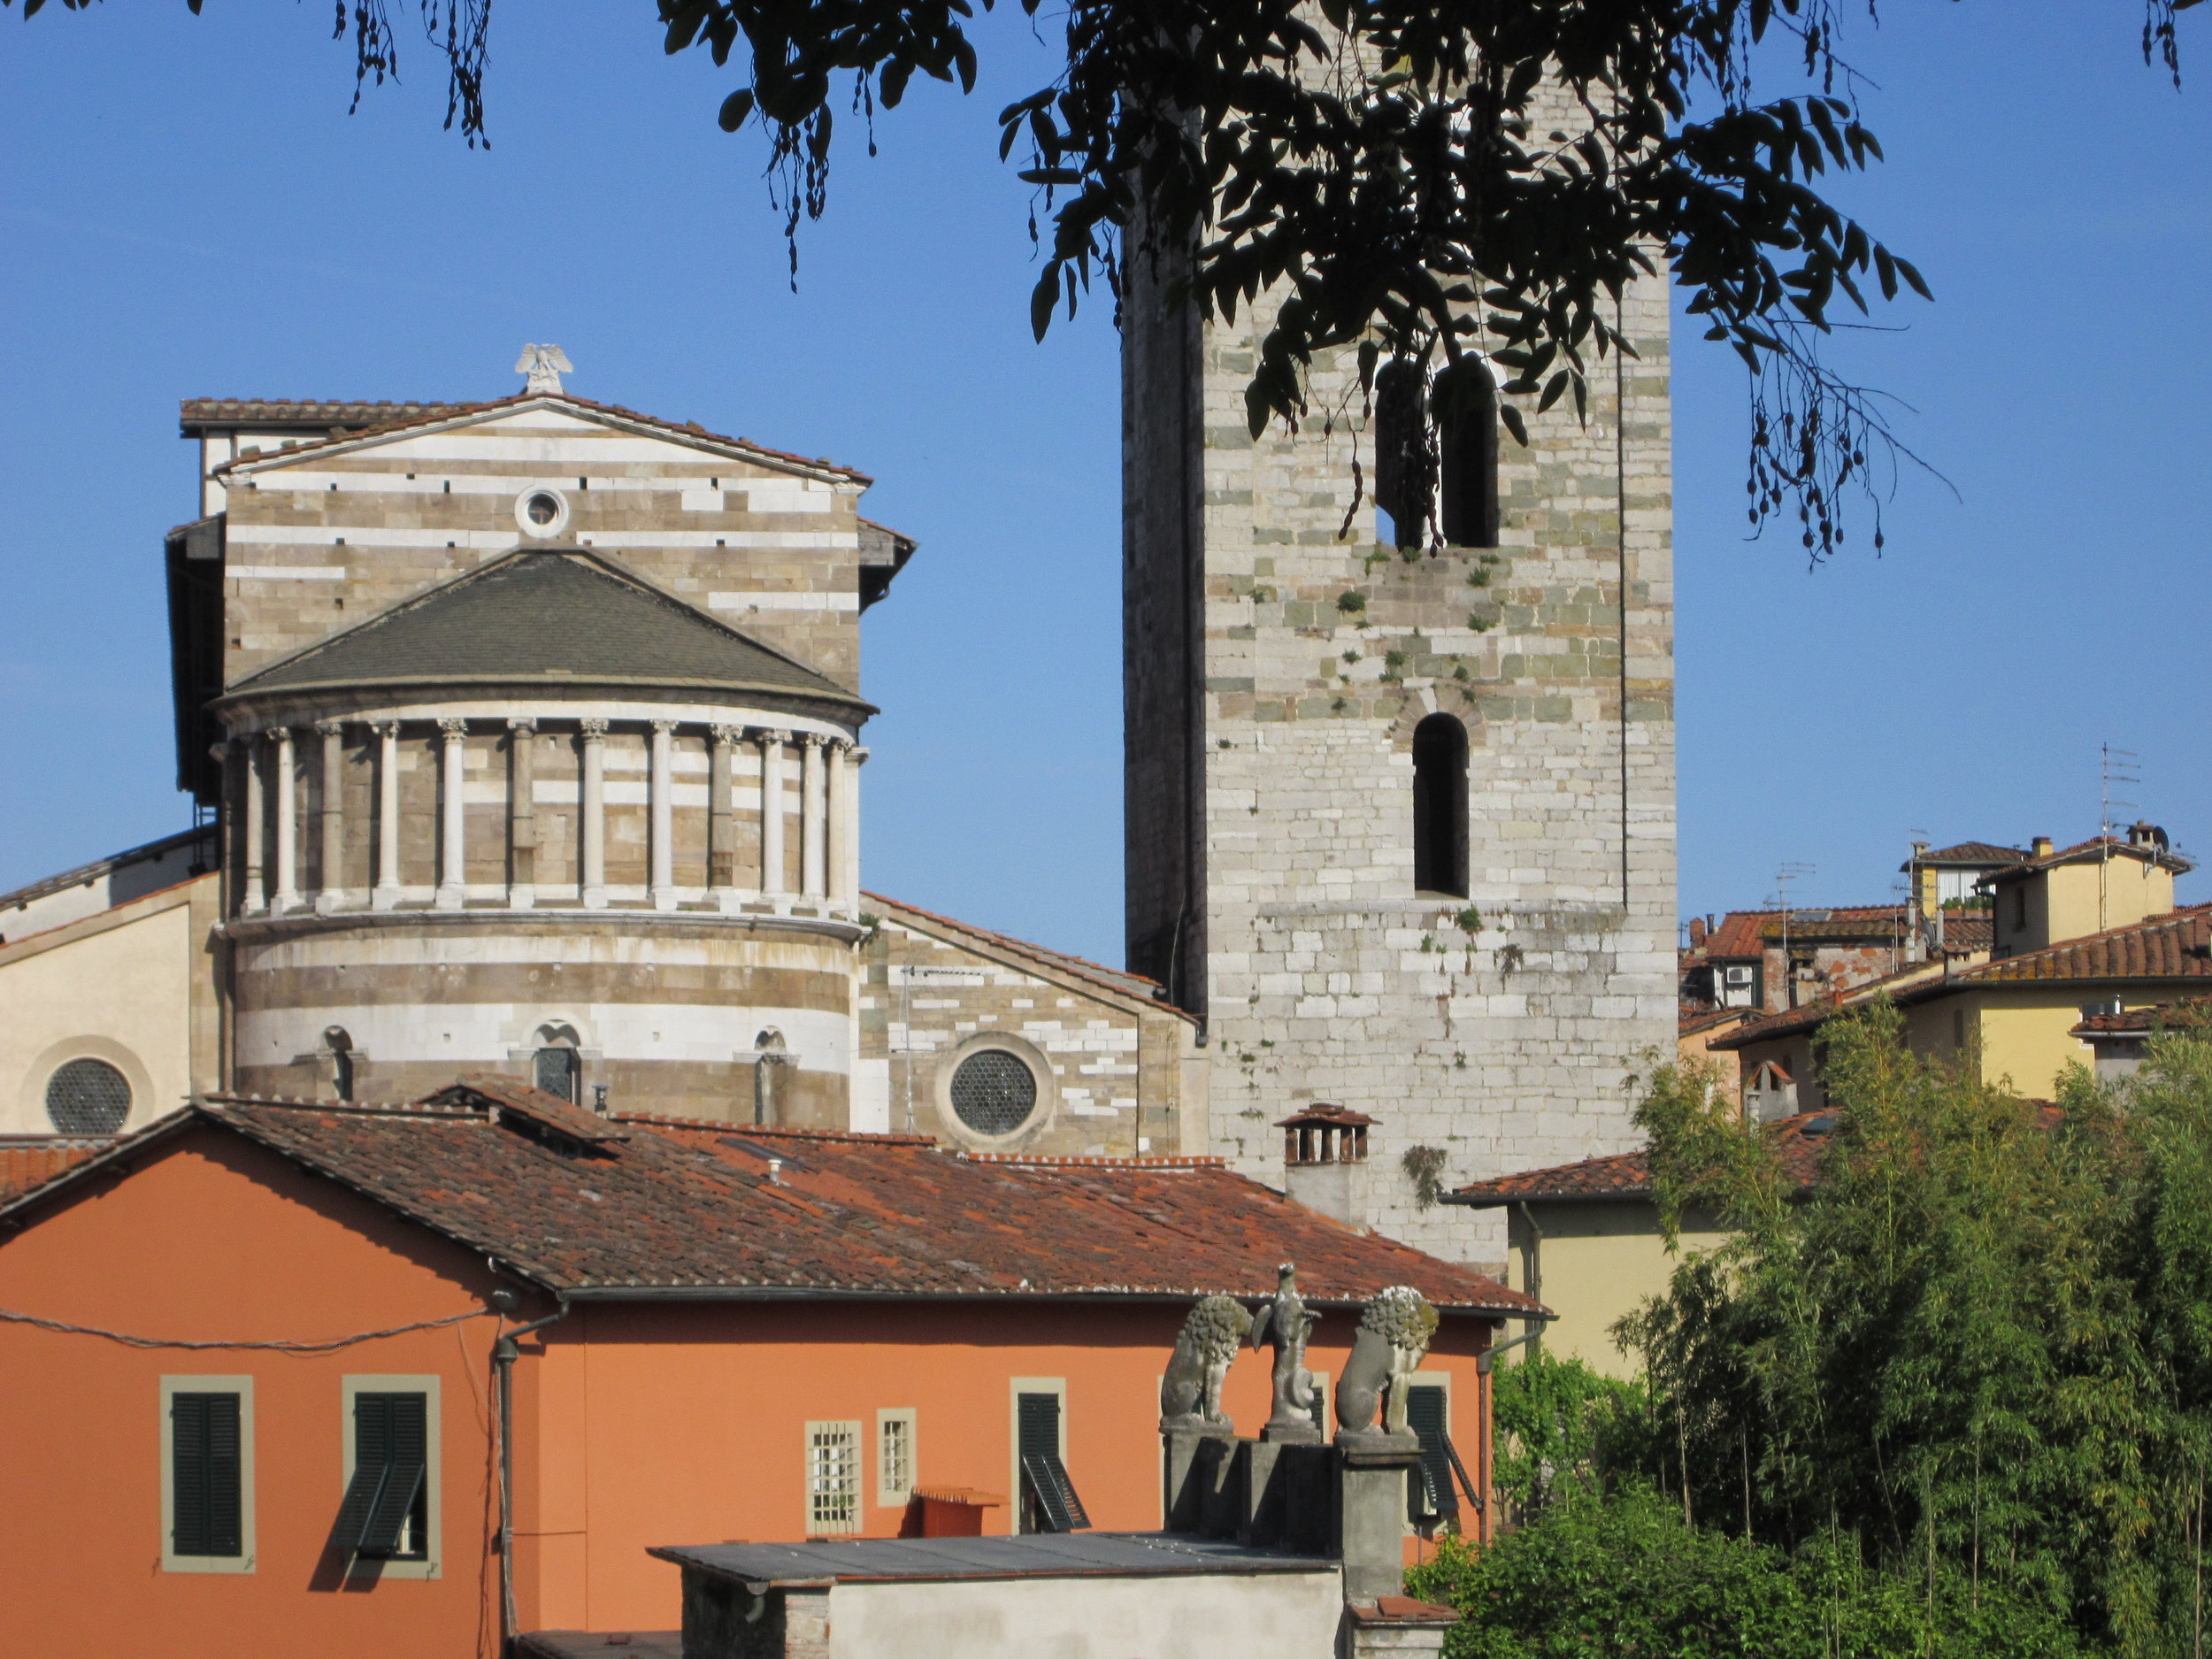 The back of the Basilica of San Frediano as seen from the wall